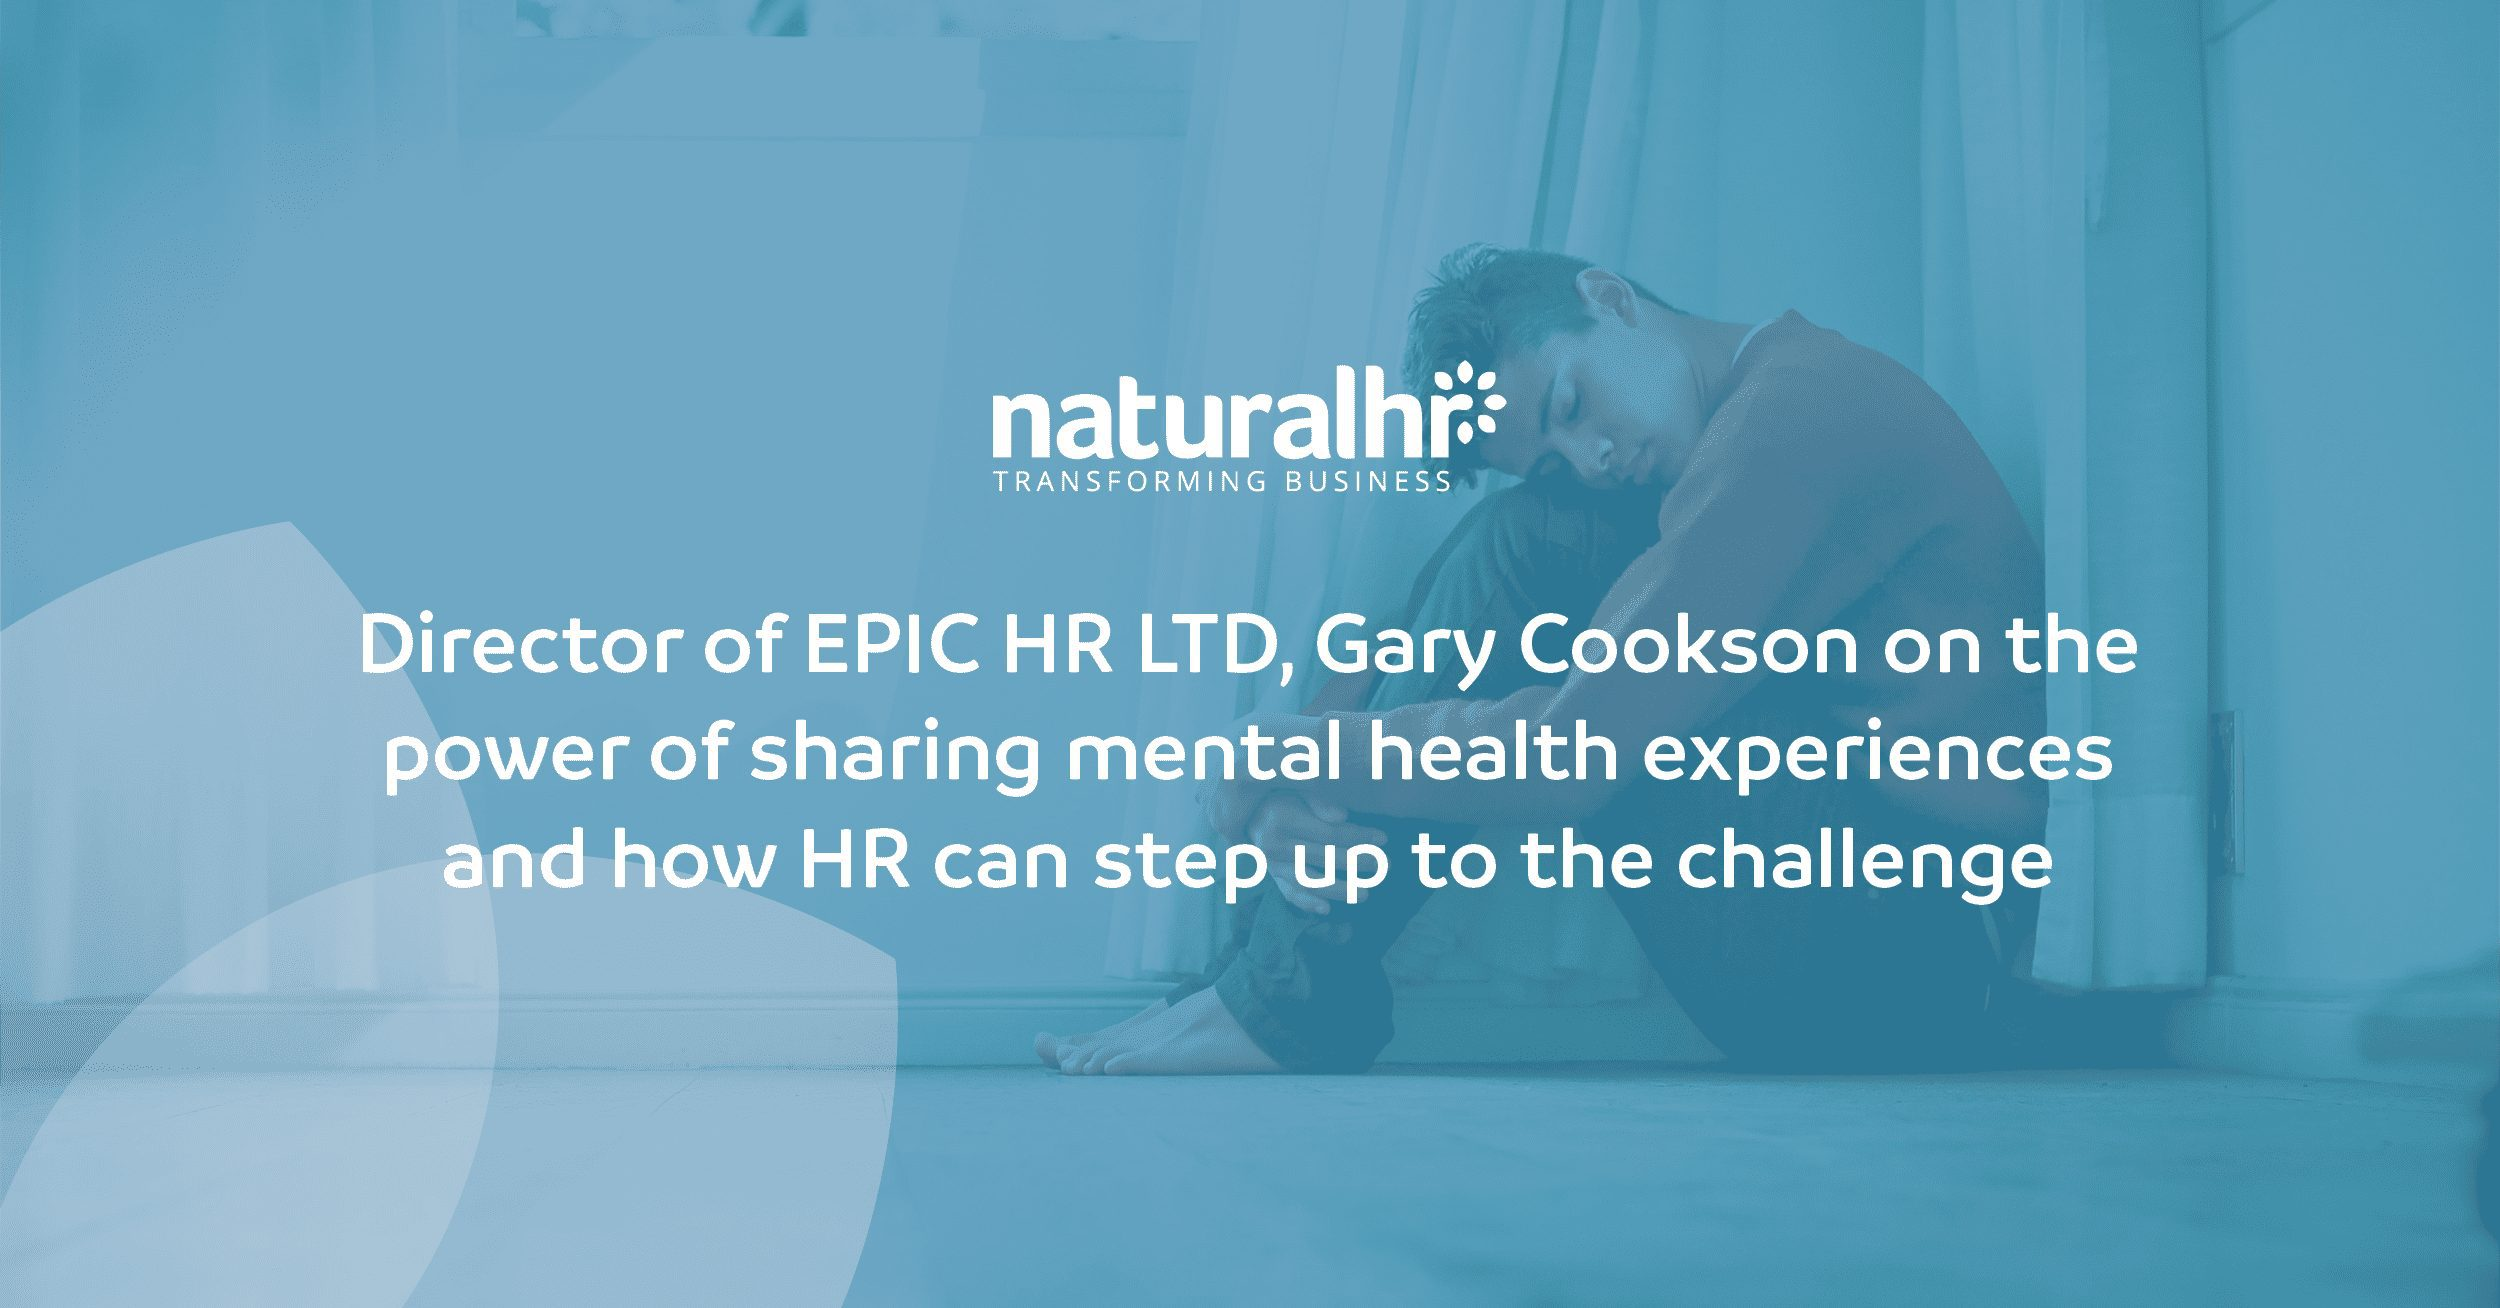 Director of EPIC HR LTD, Gary Cookson opens up about his own mental health experiences